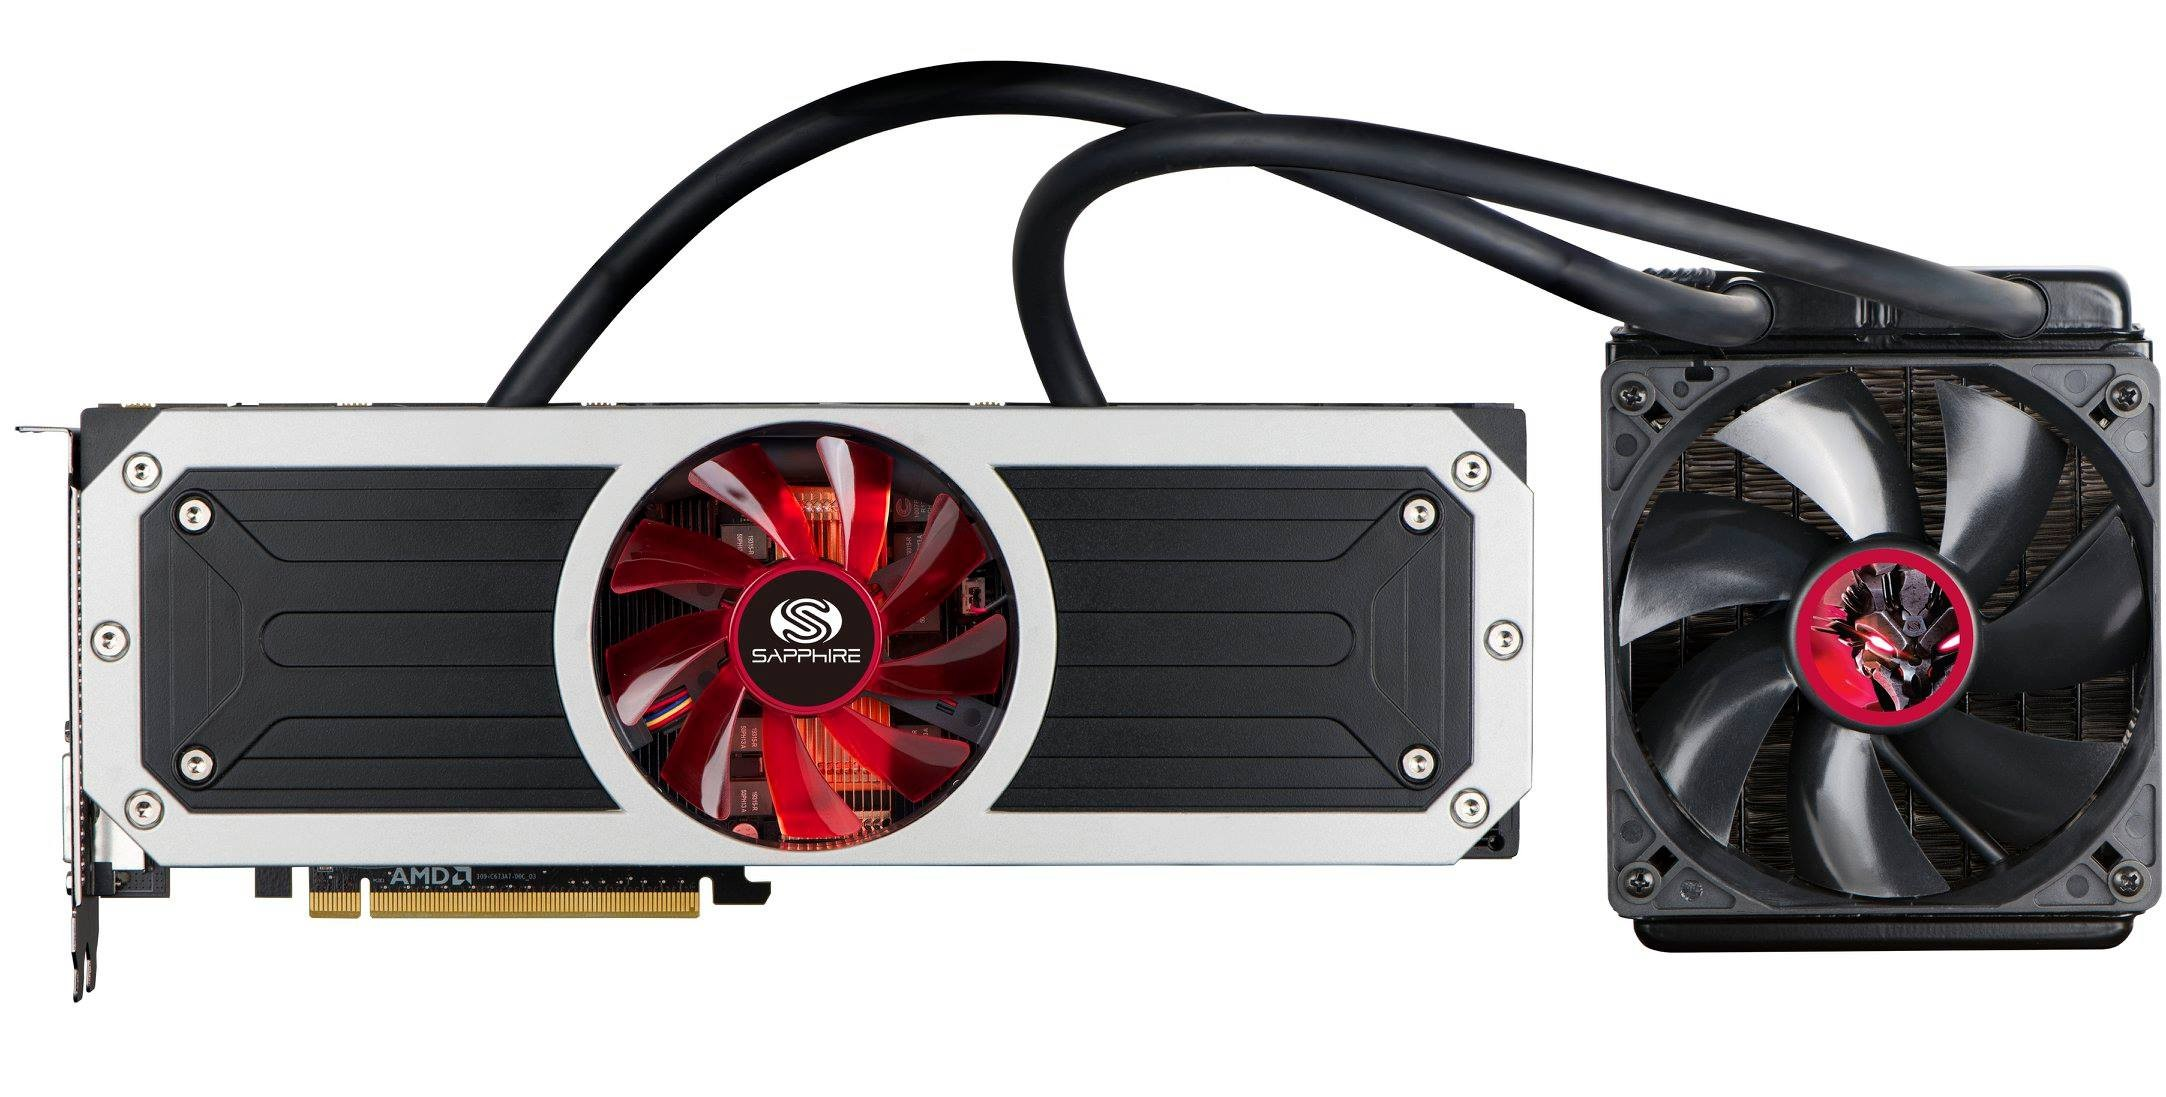 Sapphire Radeon R9 295X2 Ships in Signature Suitcase | TechPowerUp Forums